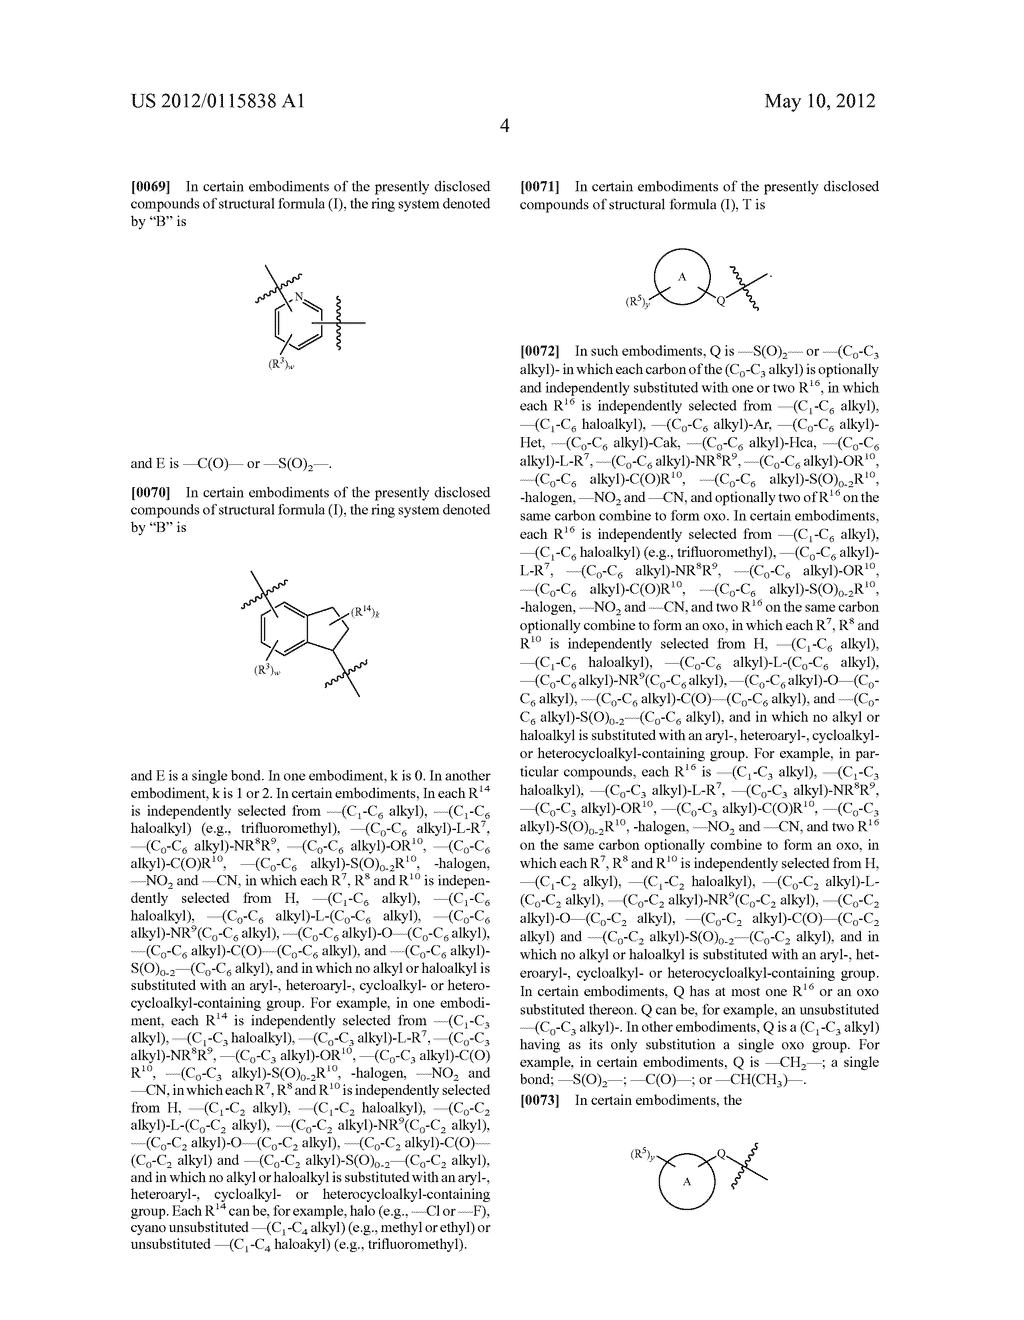 AMPK-Activating Heterocycloalkyloxy(Hetero)Aryl Carboxamide, Sulfonamide     And Amine Compounds And Methods For Using The Same - diagram, schematic, and image 05